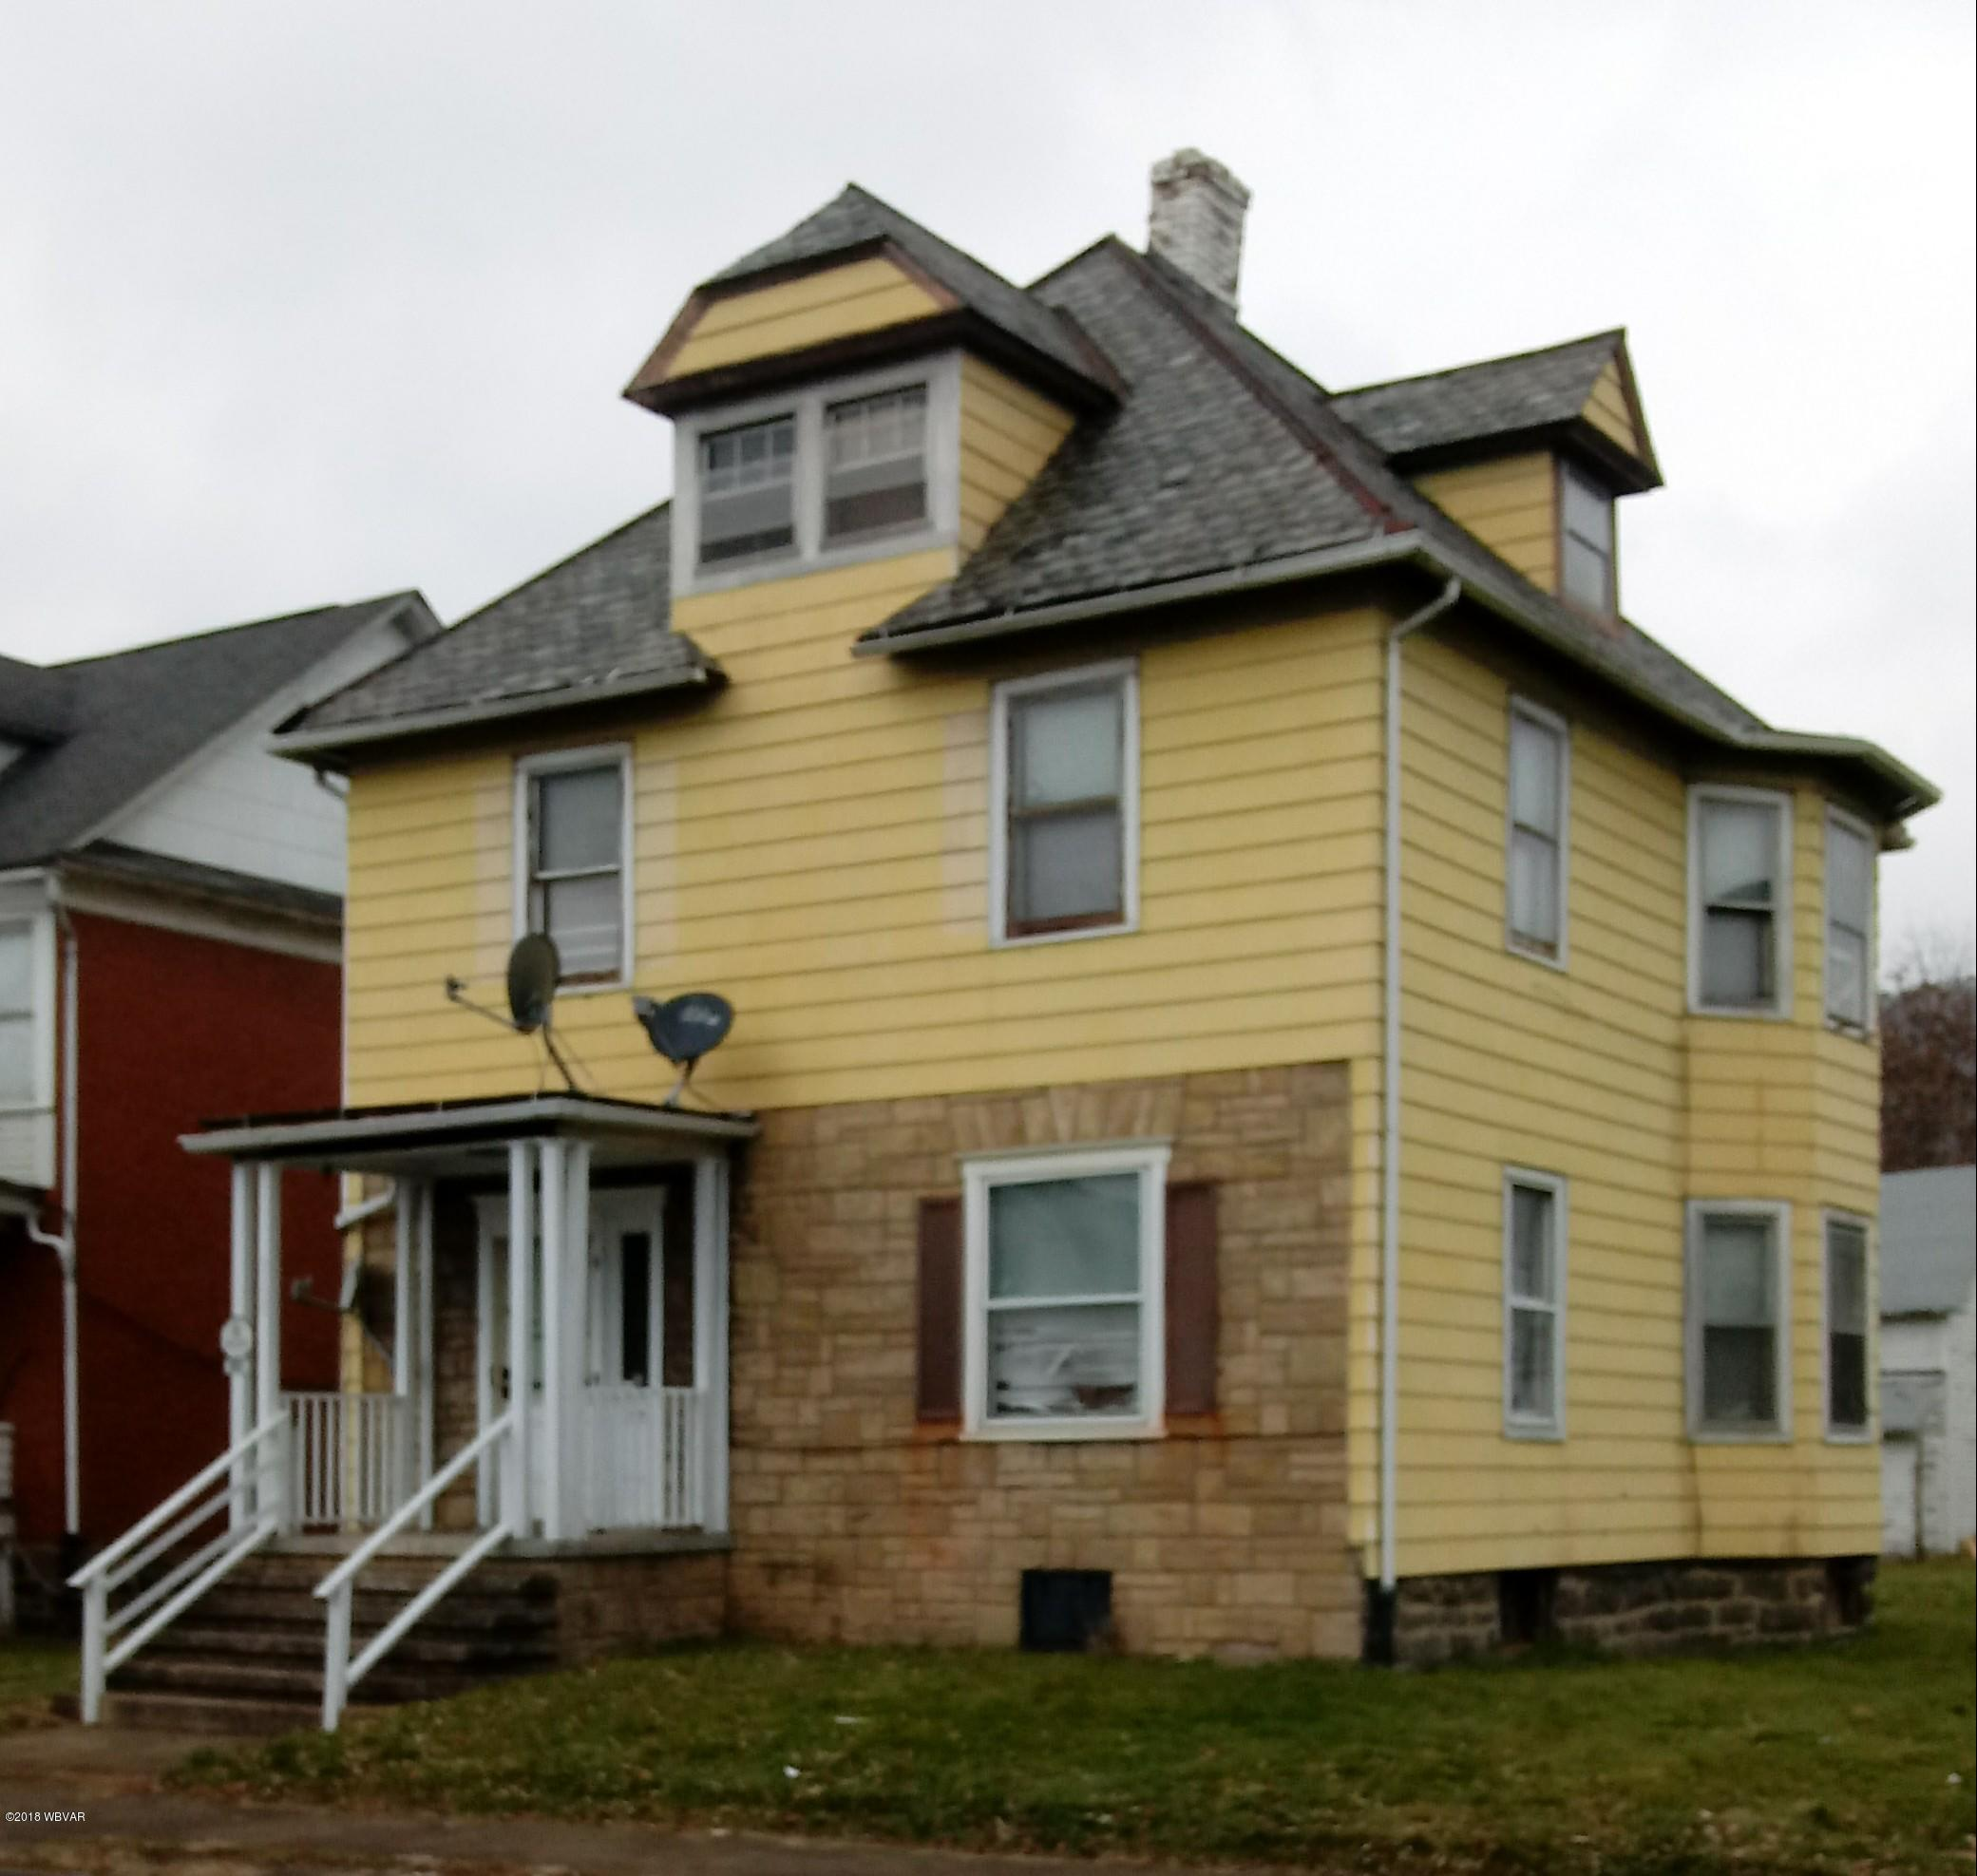 Williamsport,PA 17701,Multi-units,WB-86064